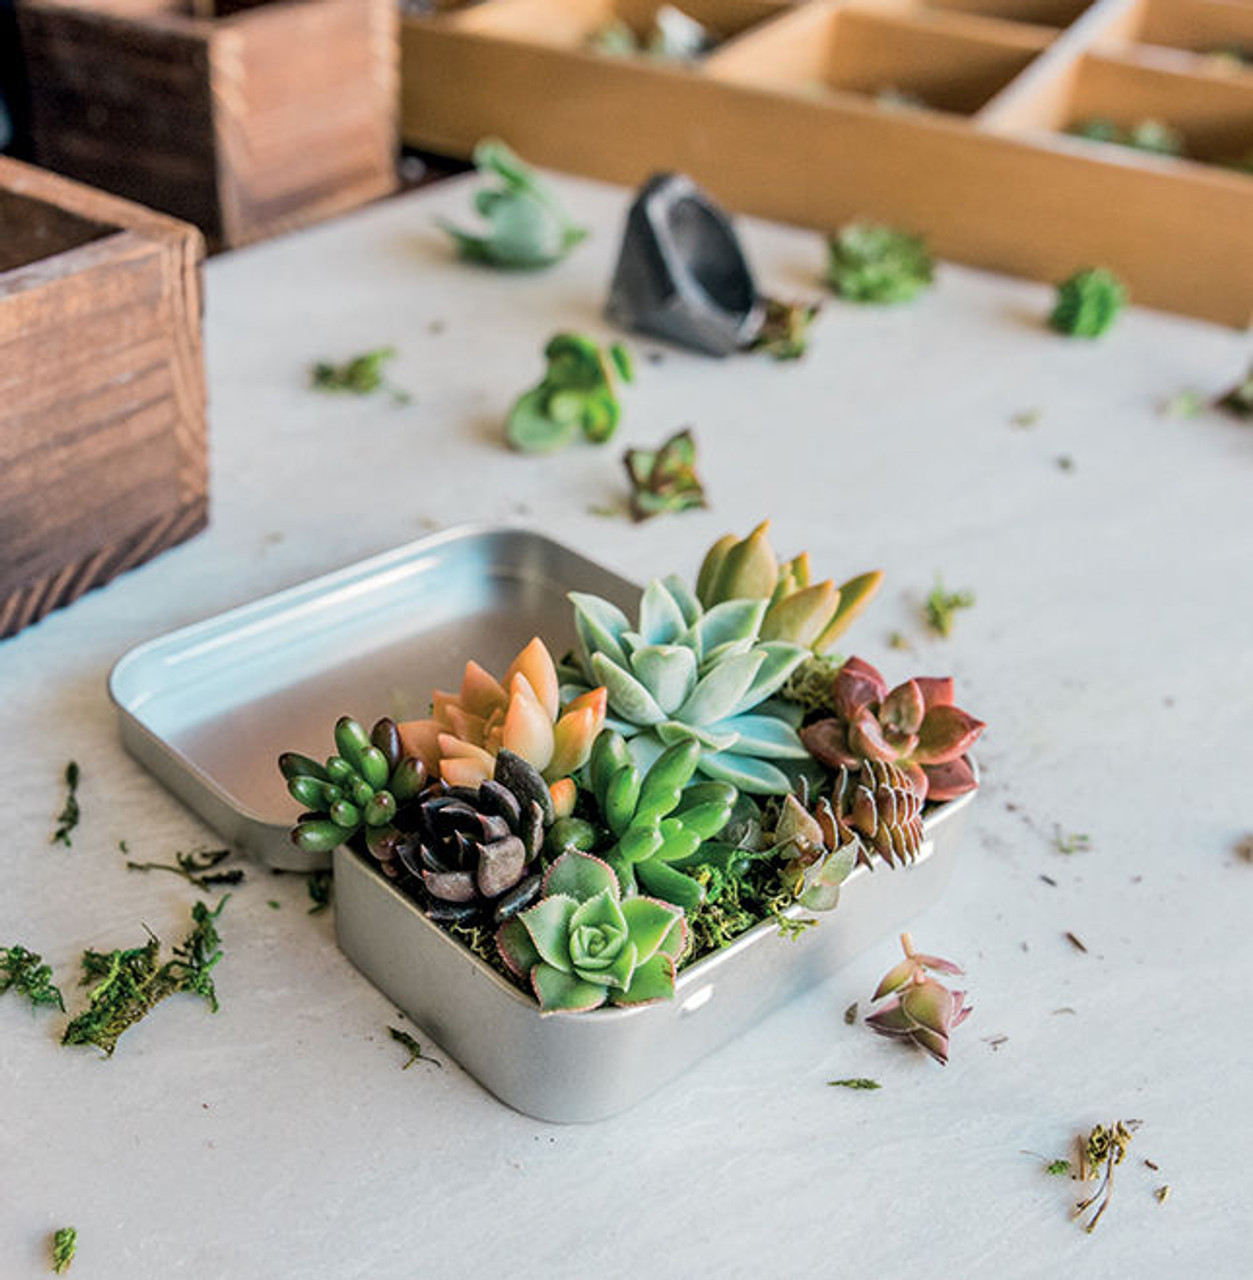 Infinite Succulent Miniature Living Art To Keep Or Share Book